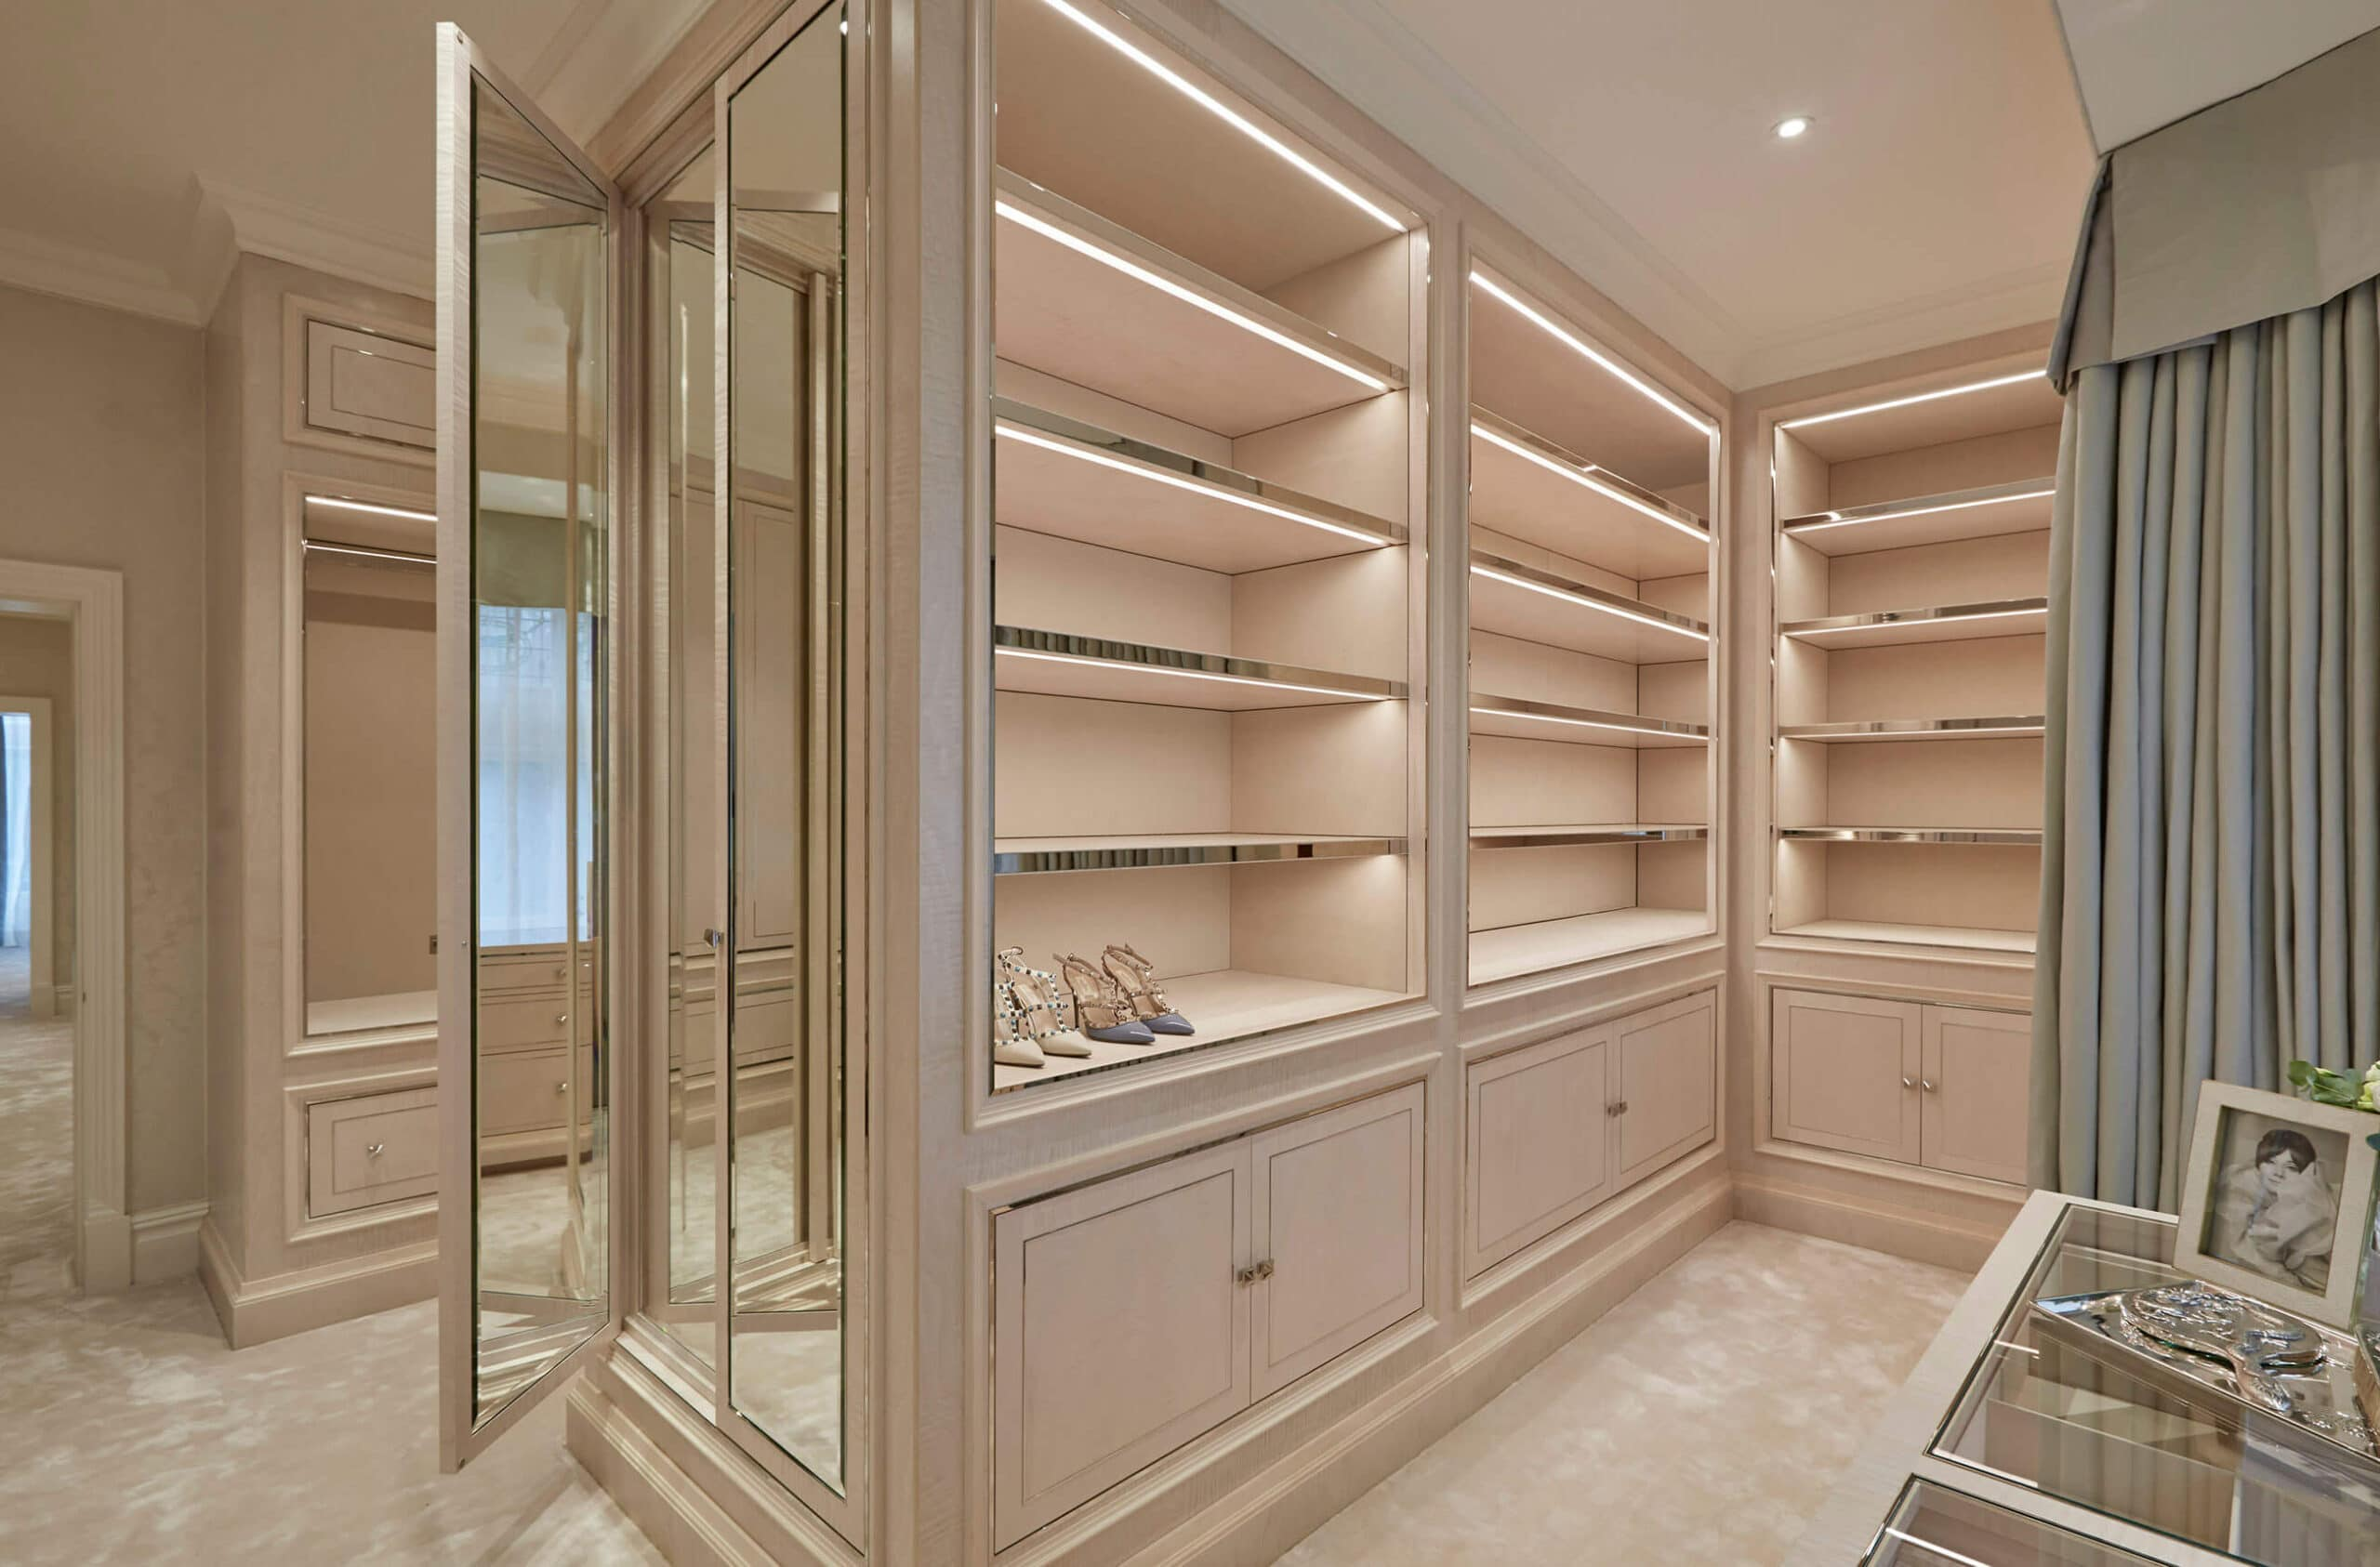 Luxury joinery in interior design project by Katharine Pooley